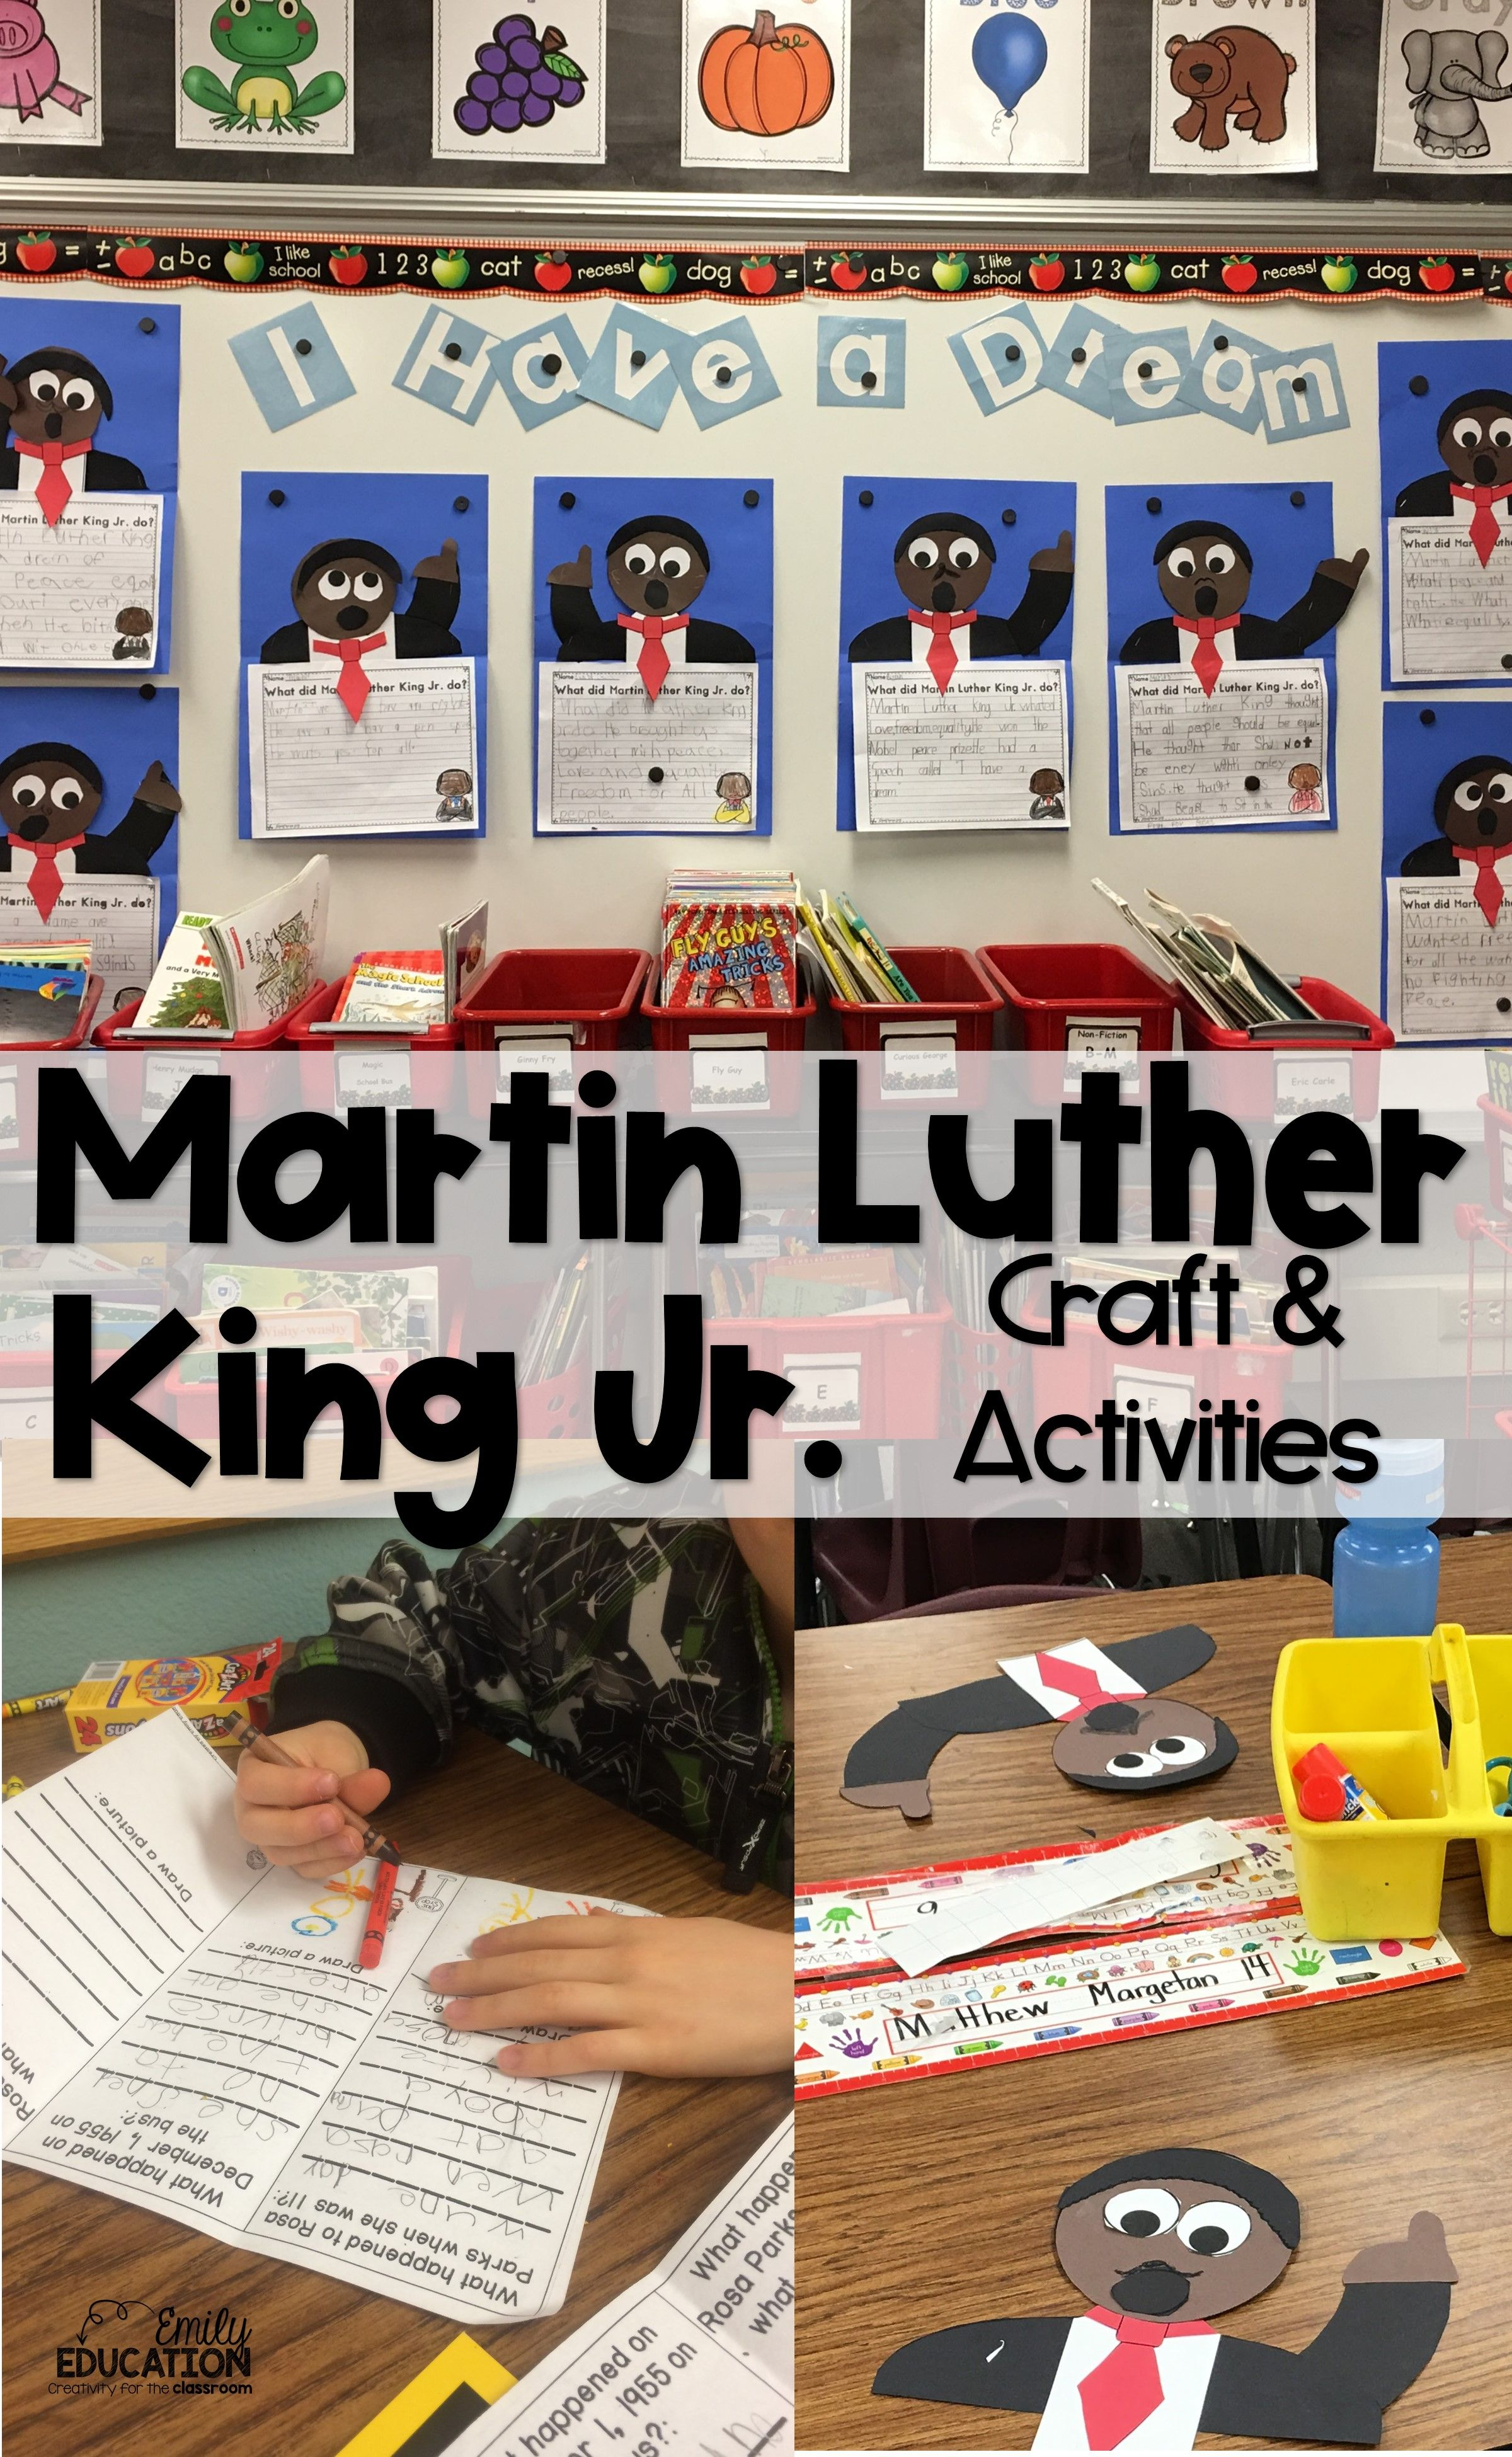 Martin Luther King Jr Craft And Activities